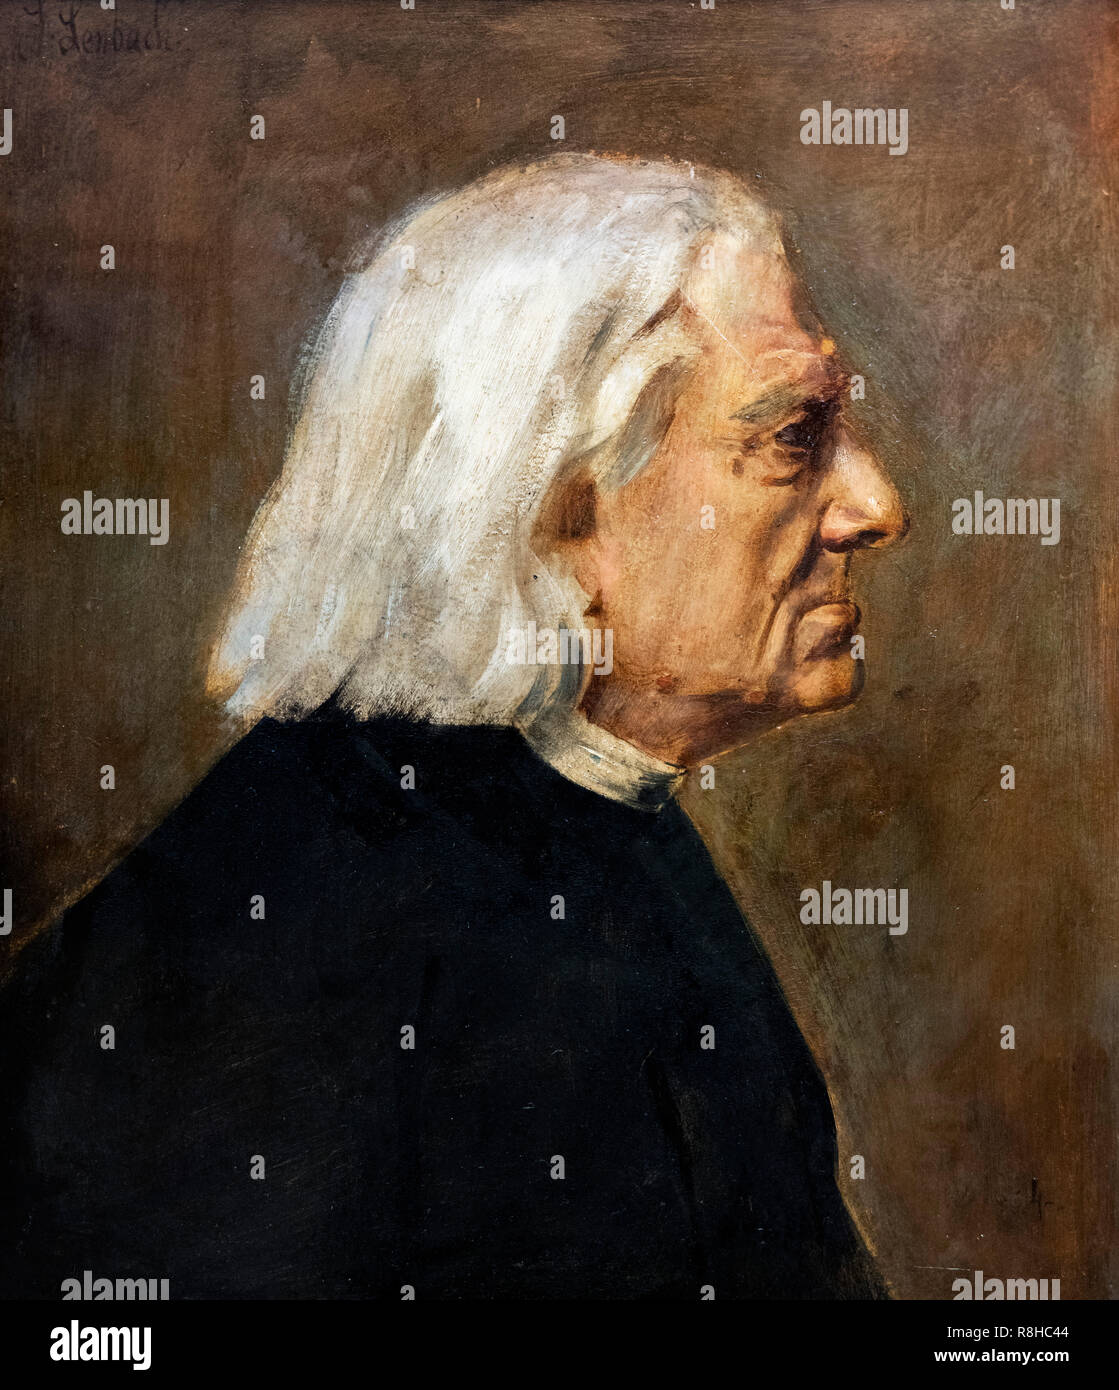 Portrait of the Hungarian pianist and composer, Franz Liszt (1811-1886) by Franz von Lenbach (1836-1904), oil on cardboard, 1884 - Stock Image